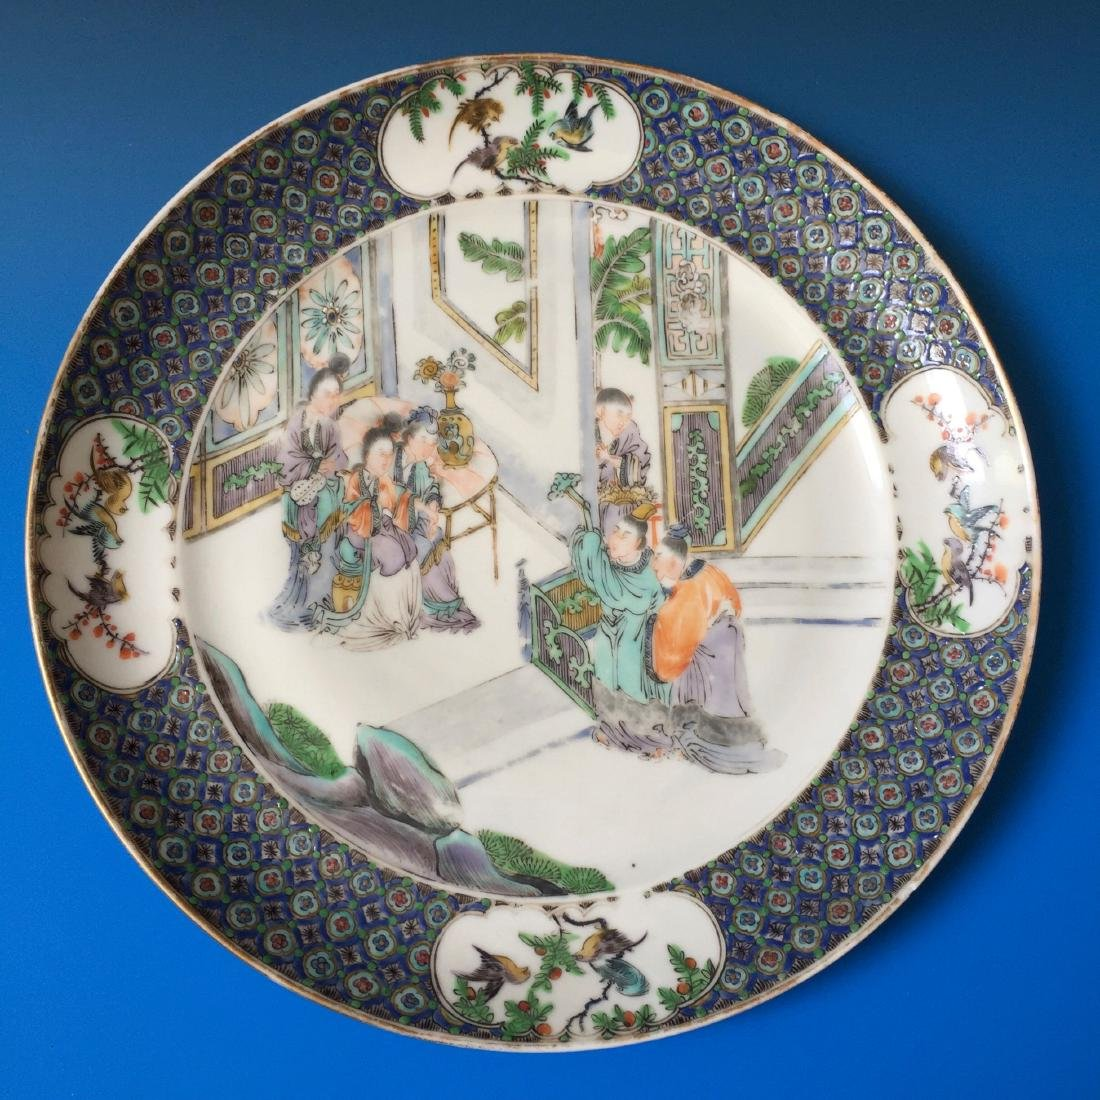 A BEAUTIFUL CHINESE ANTIQUE PLATE,19C.